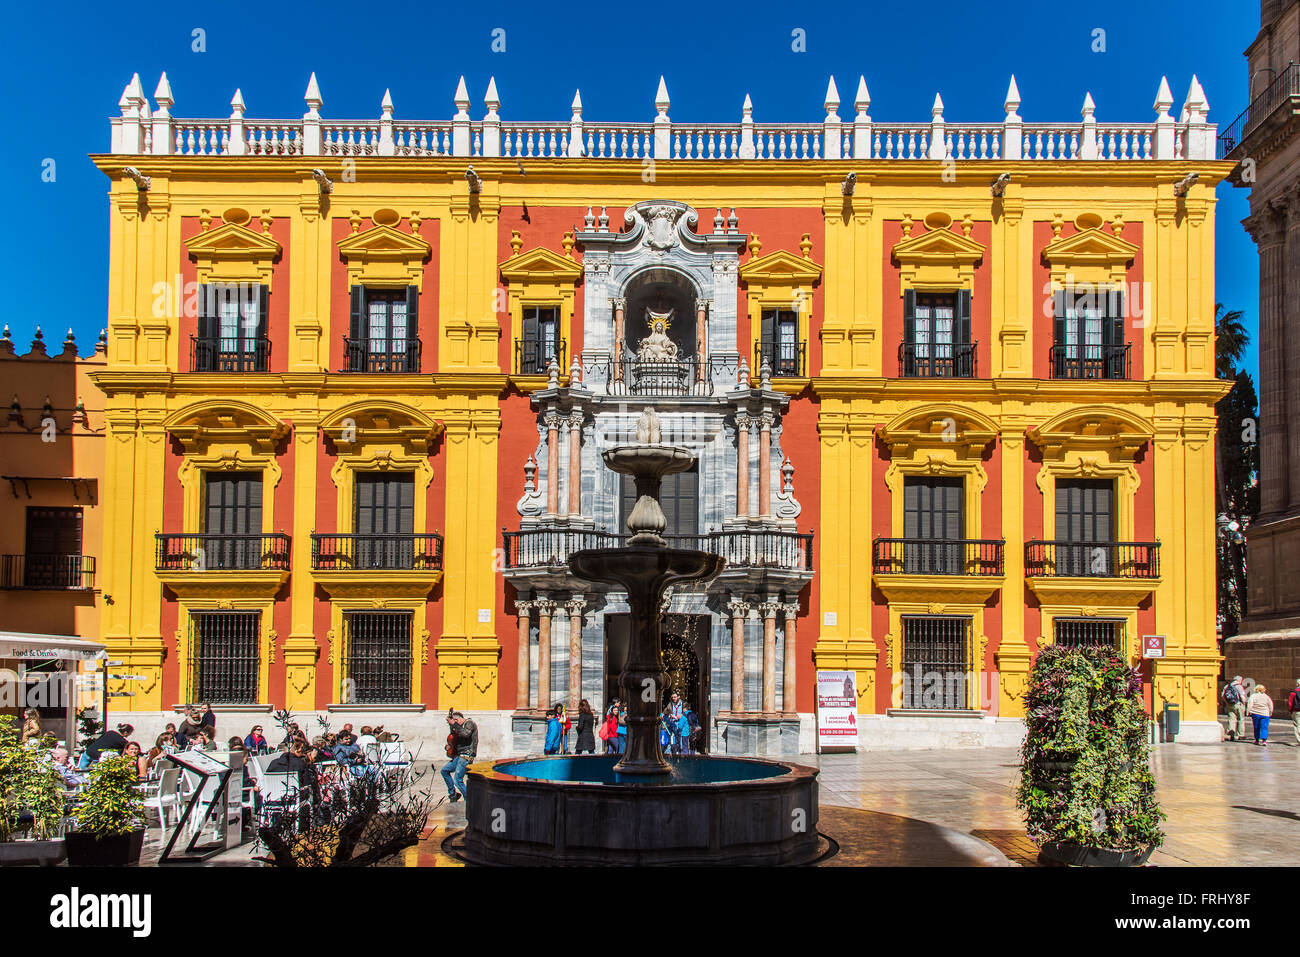 Palacio Episcopal or Episcopal Palace, Plaza del Obispo, Malaga, Andalusia, Spain - Stock Image